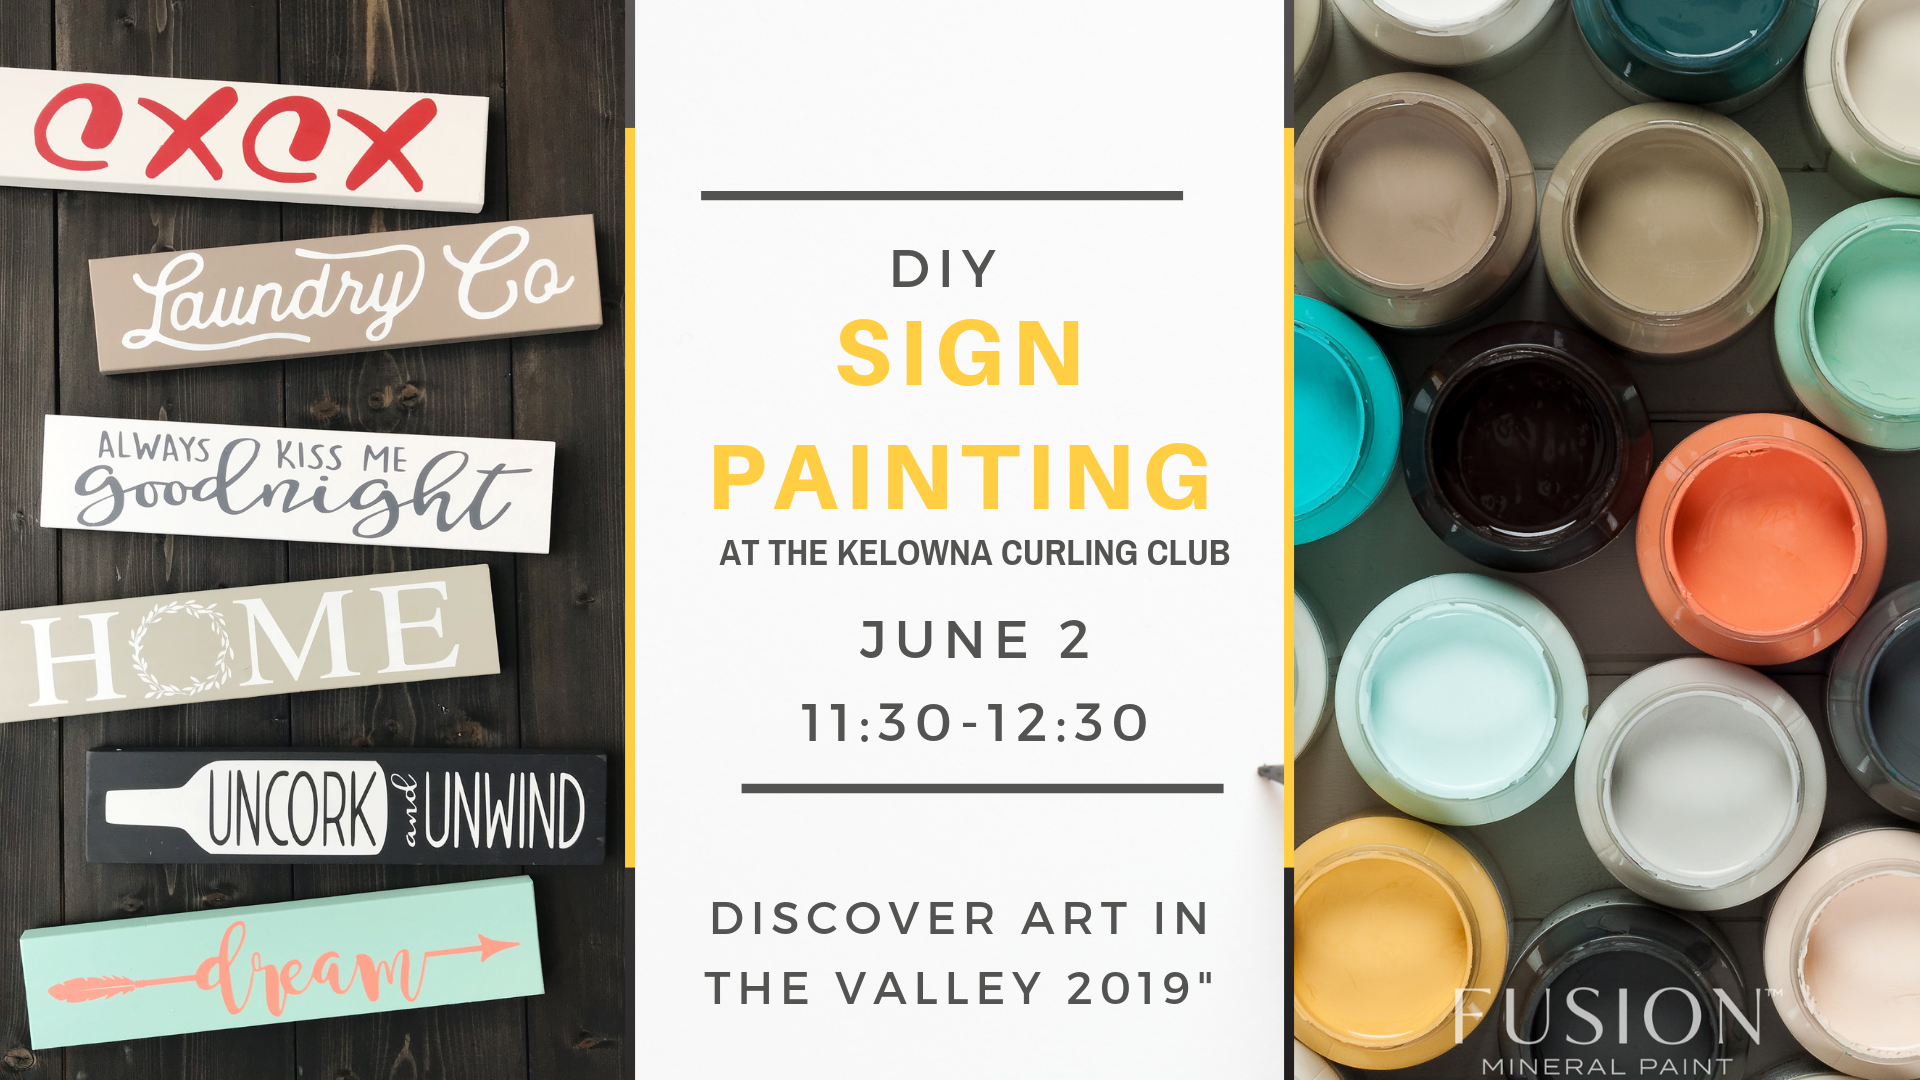 discover art in the valley 2019 sign painting